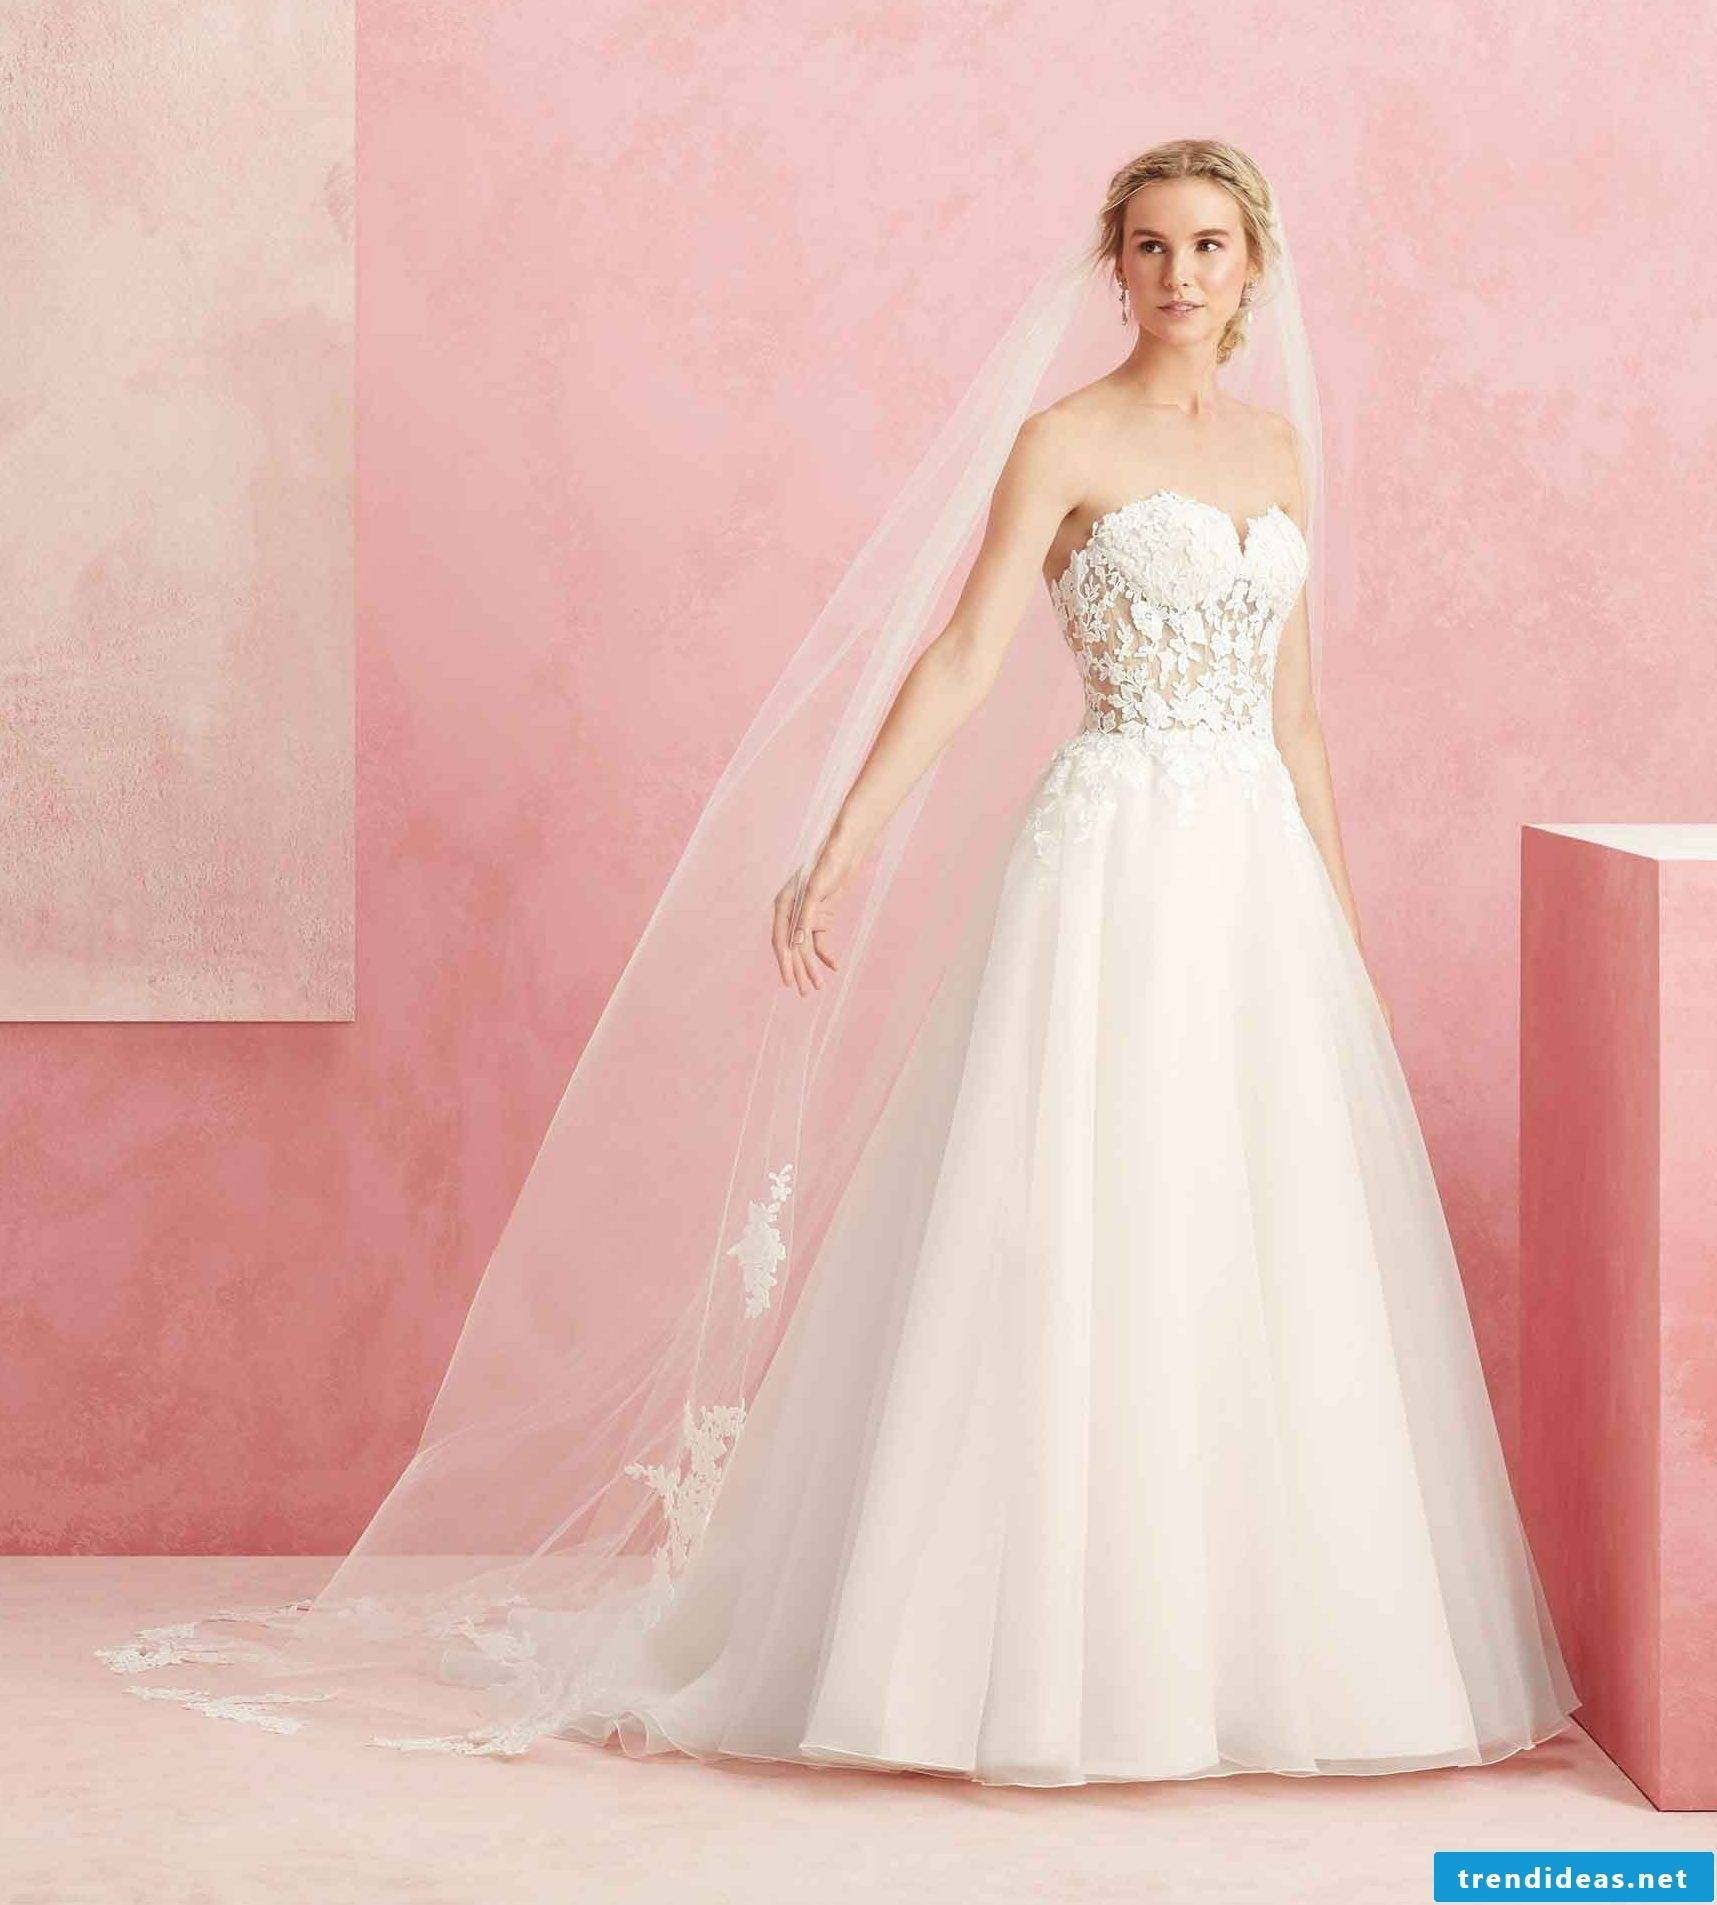 Look stunning on your wedding day with a dress in pastel colors